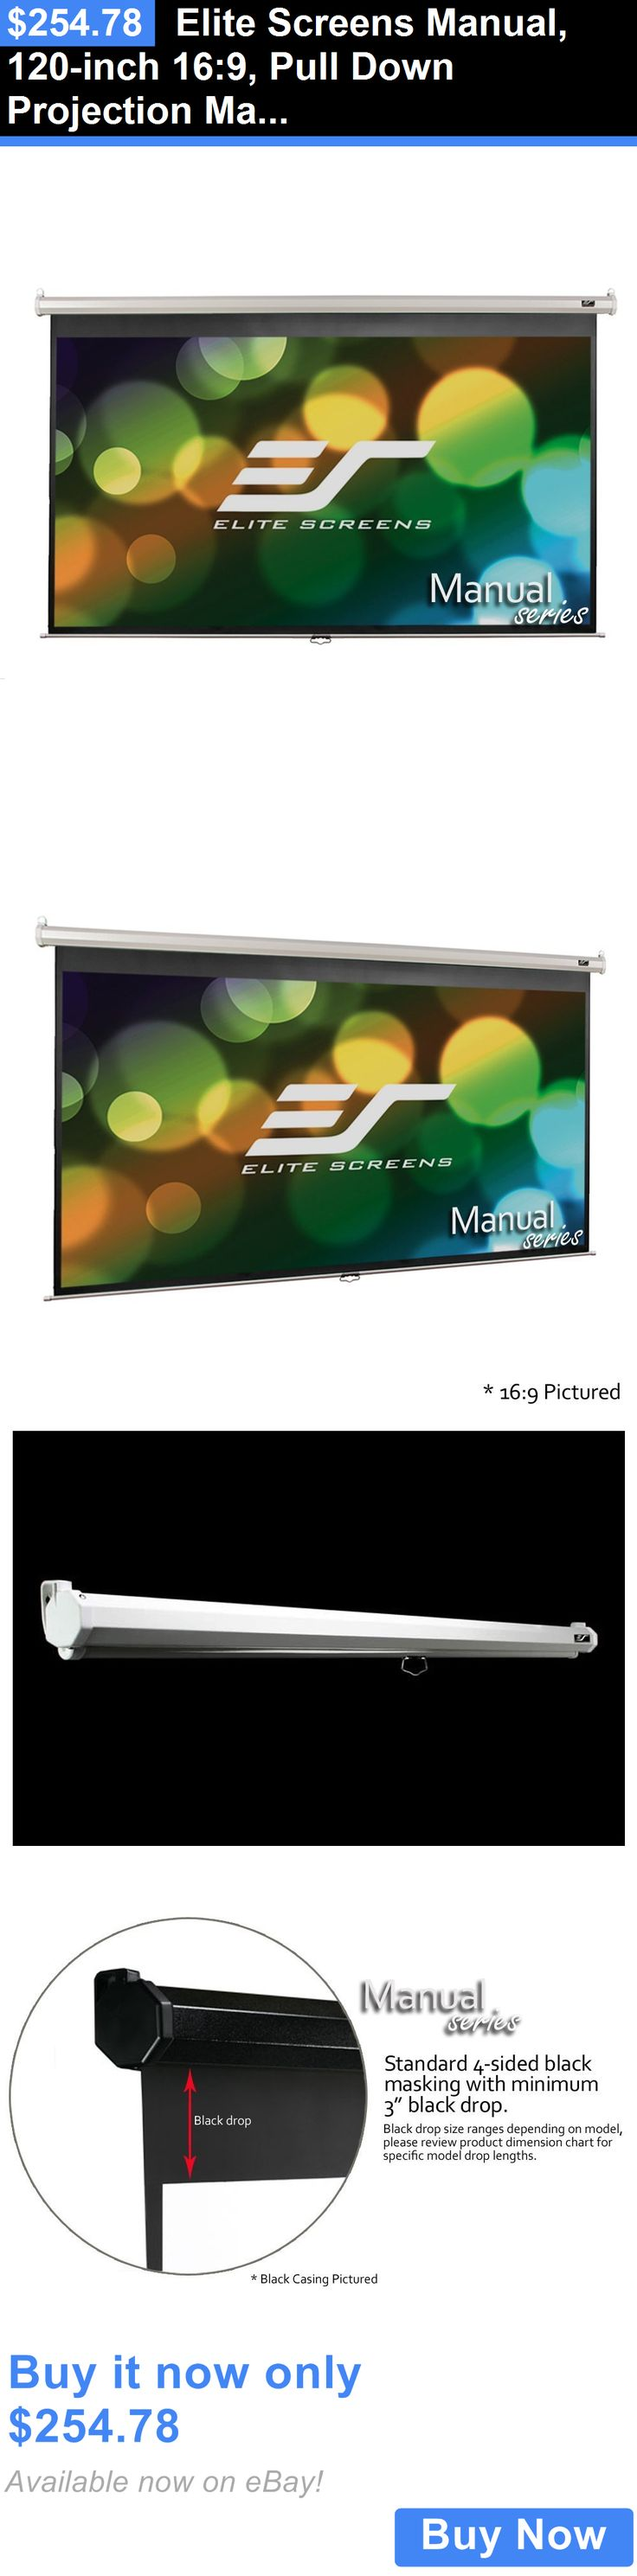 Projection Screens and Material: Elite Screens Manual, 120-Inch 16:9, Pull Down Projection Manual Projector #6W BUY IT NOW ONLY: $254.78